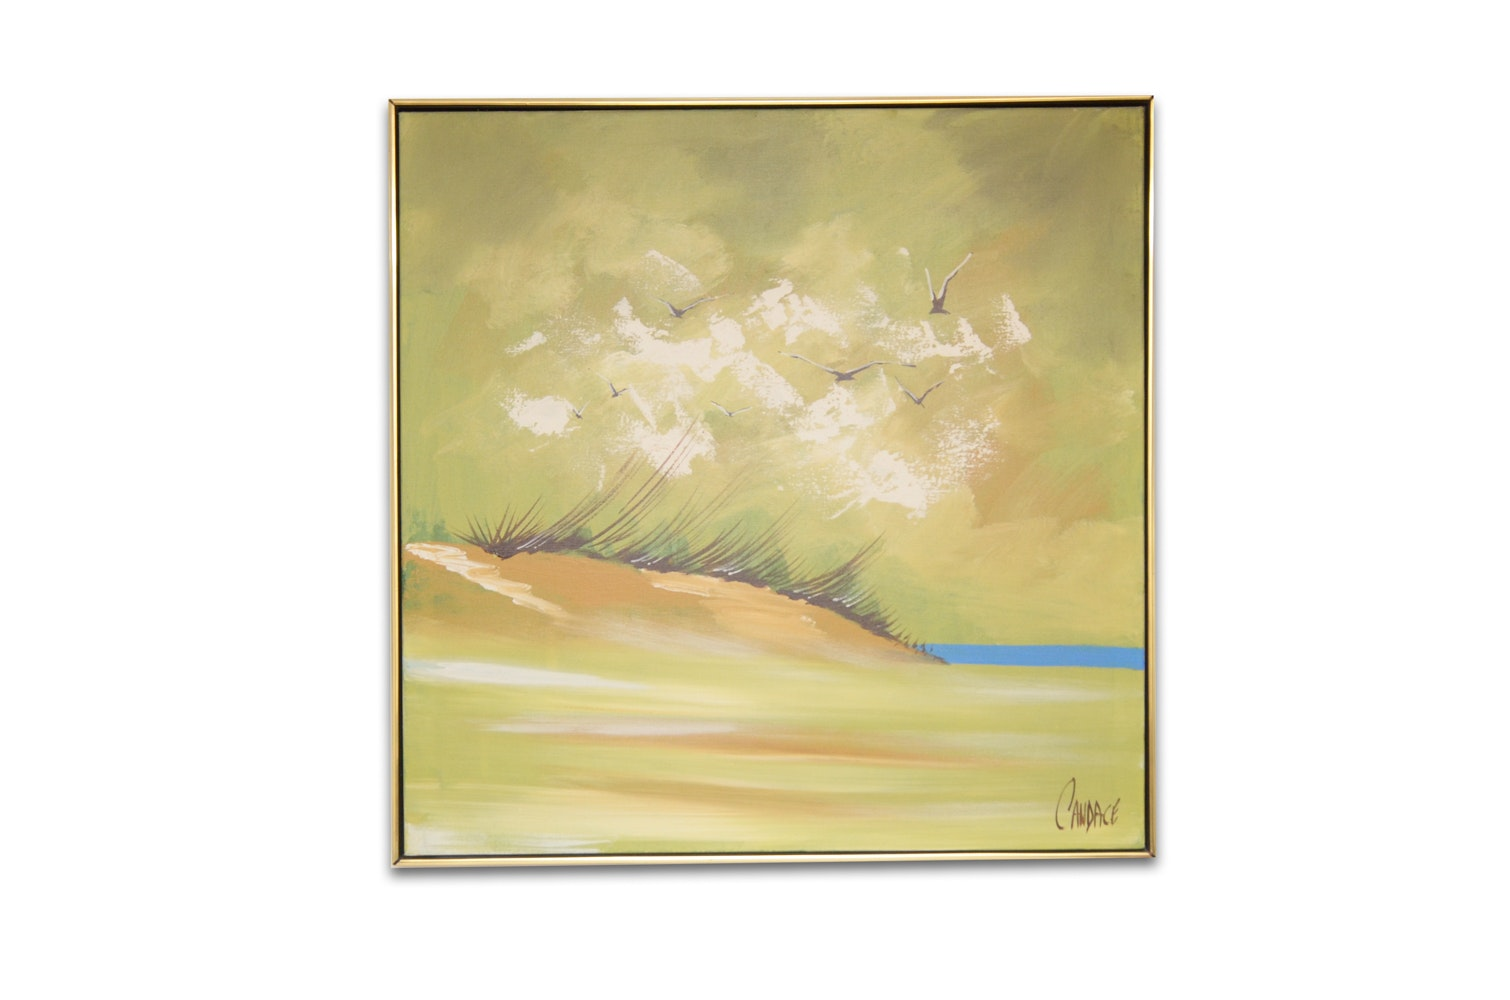 Candace Oil Painting on Canvas of Beach Landscape